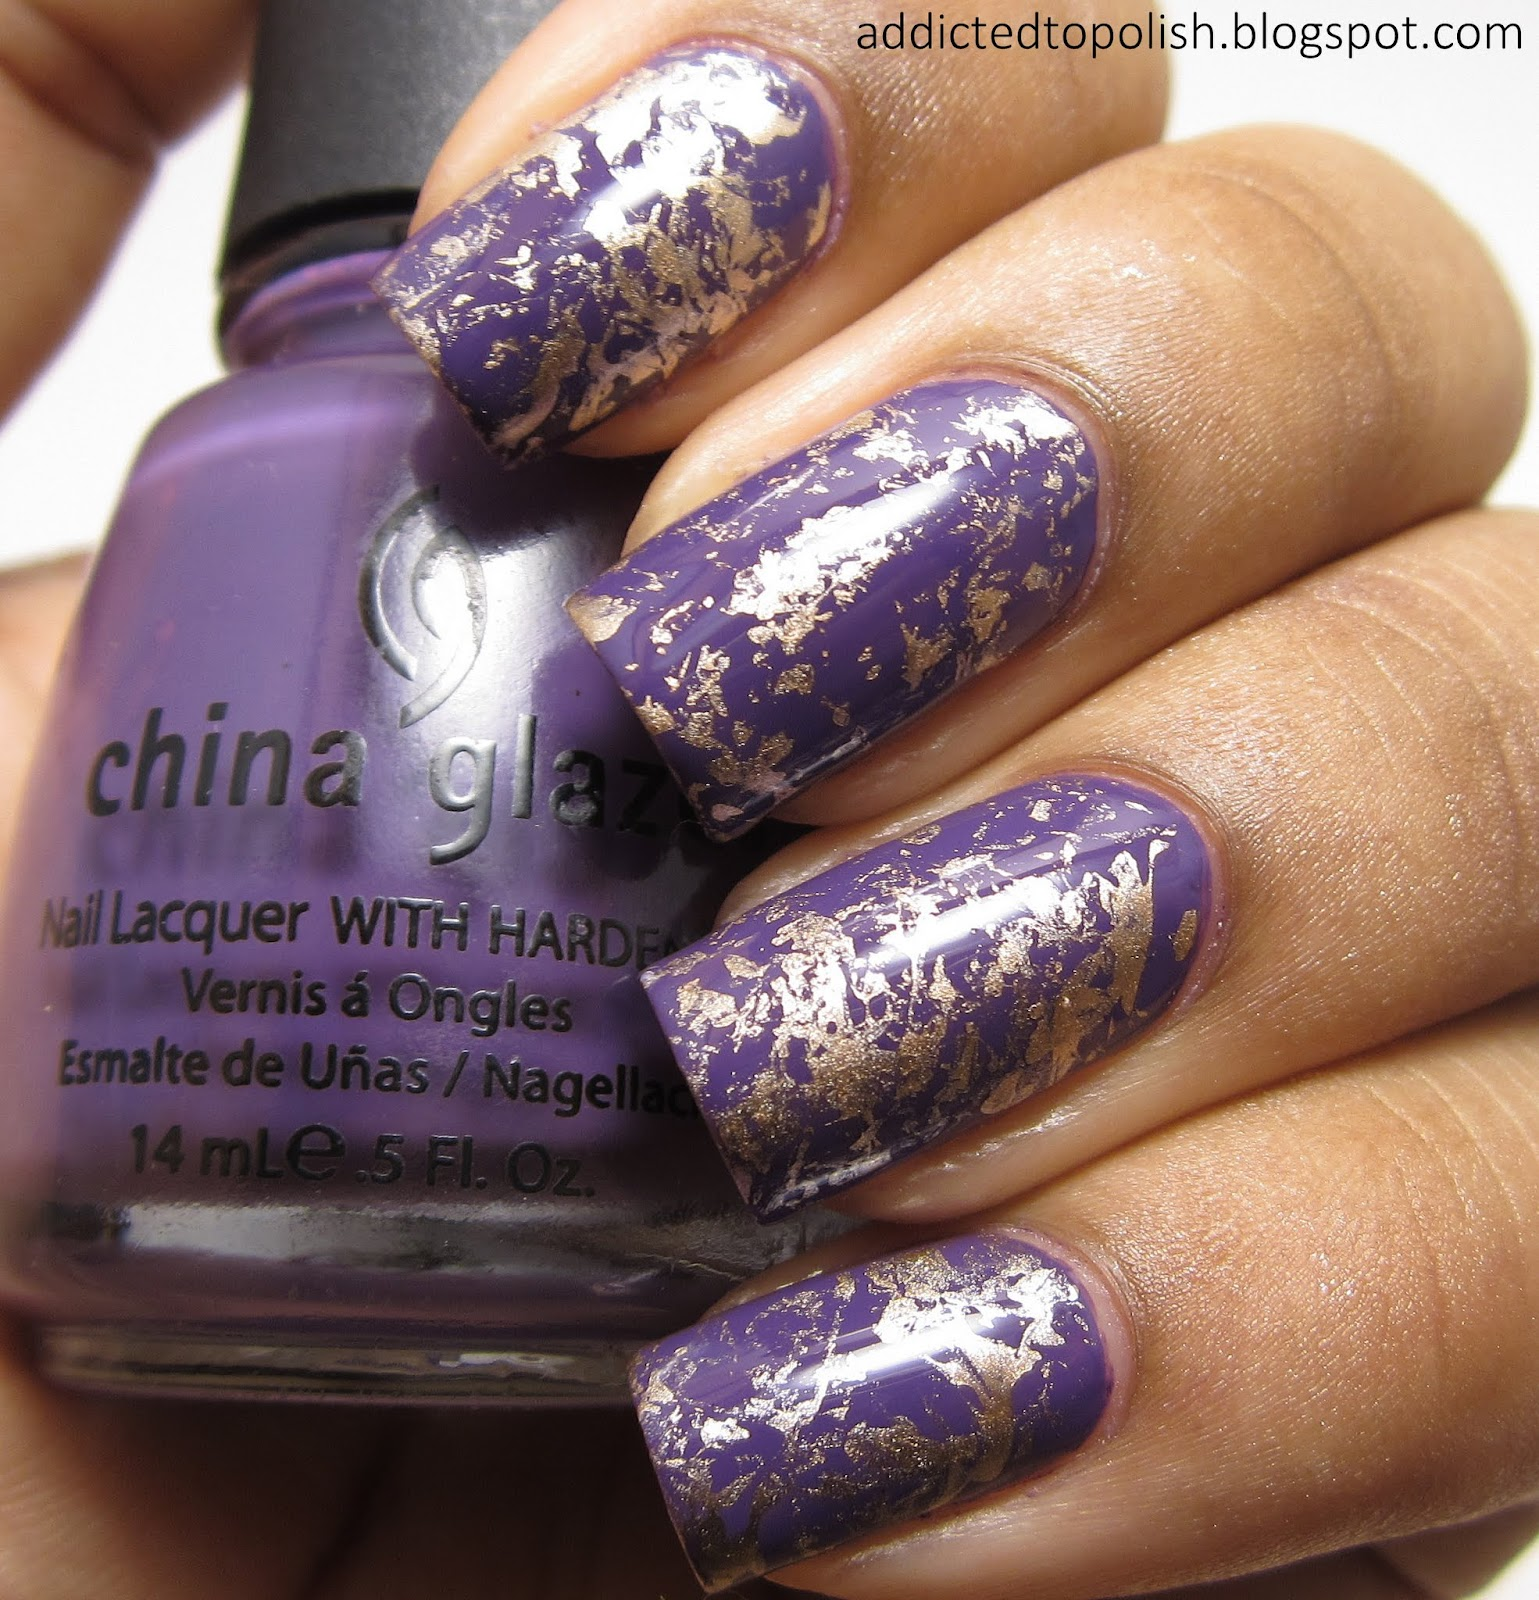 China-Glaze-Grape-Pop-2030-Saran-Wrap-Nail-Art